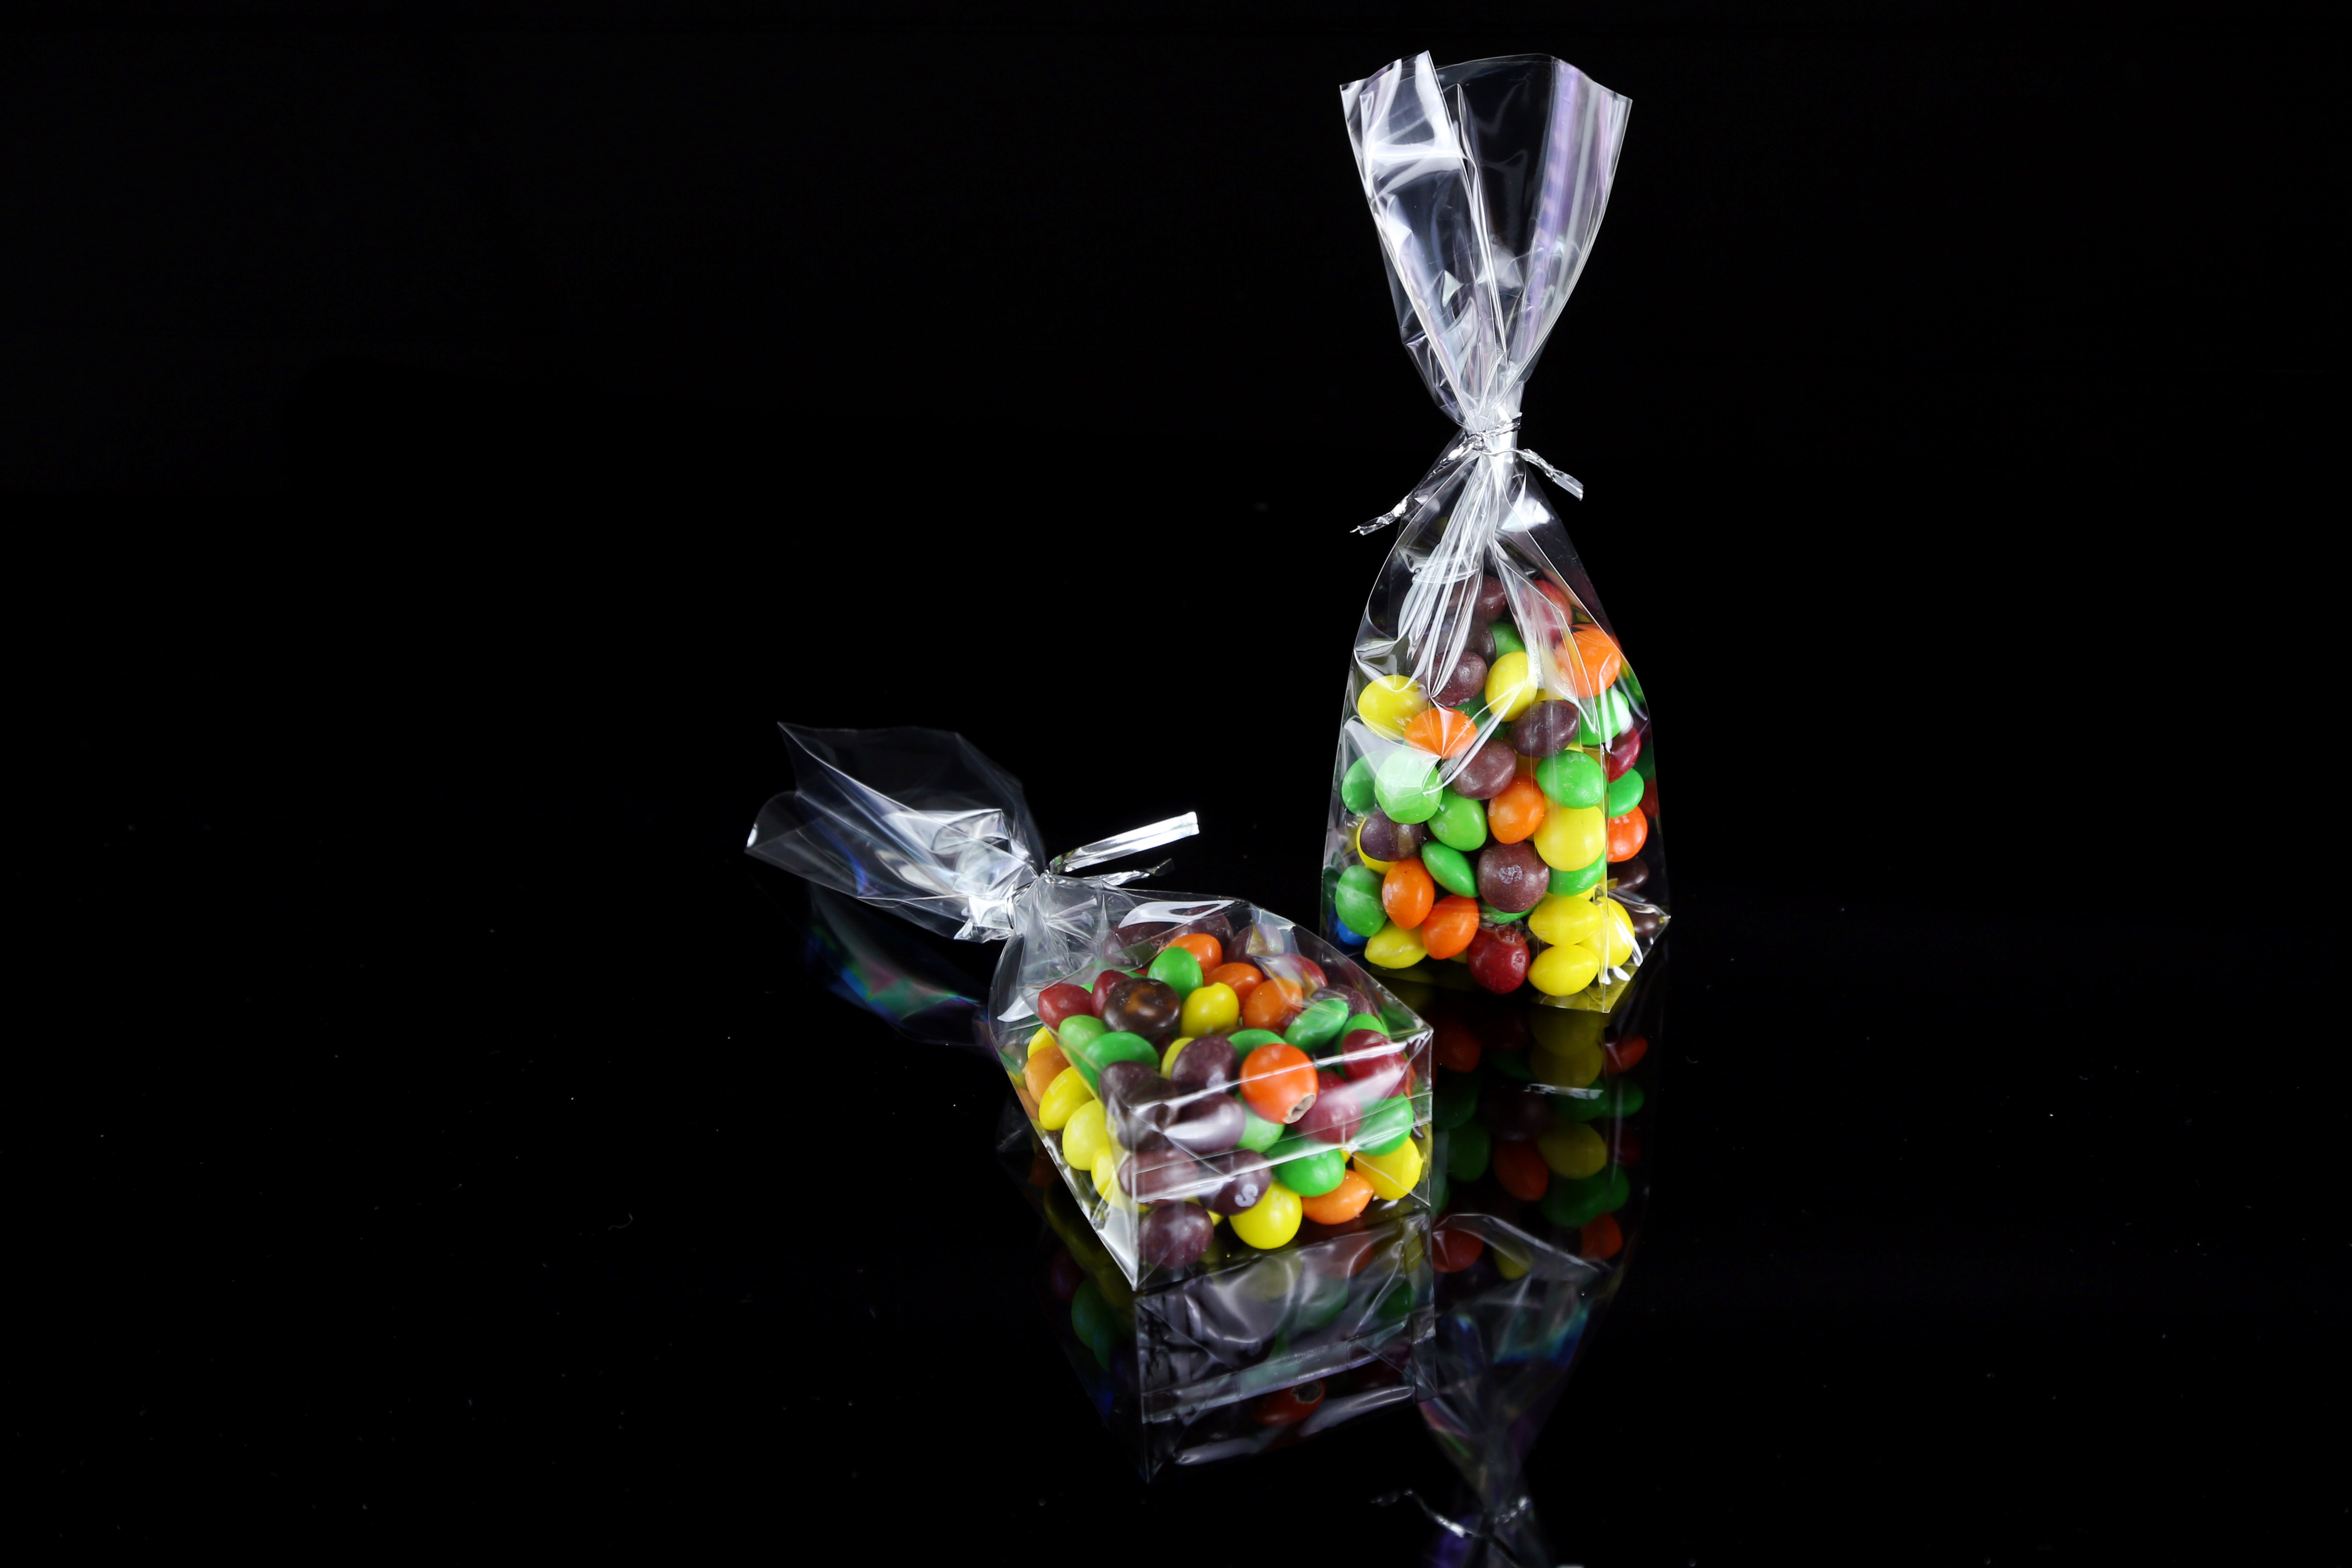 Cellophane candy bags